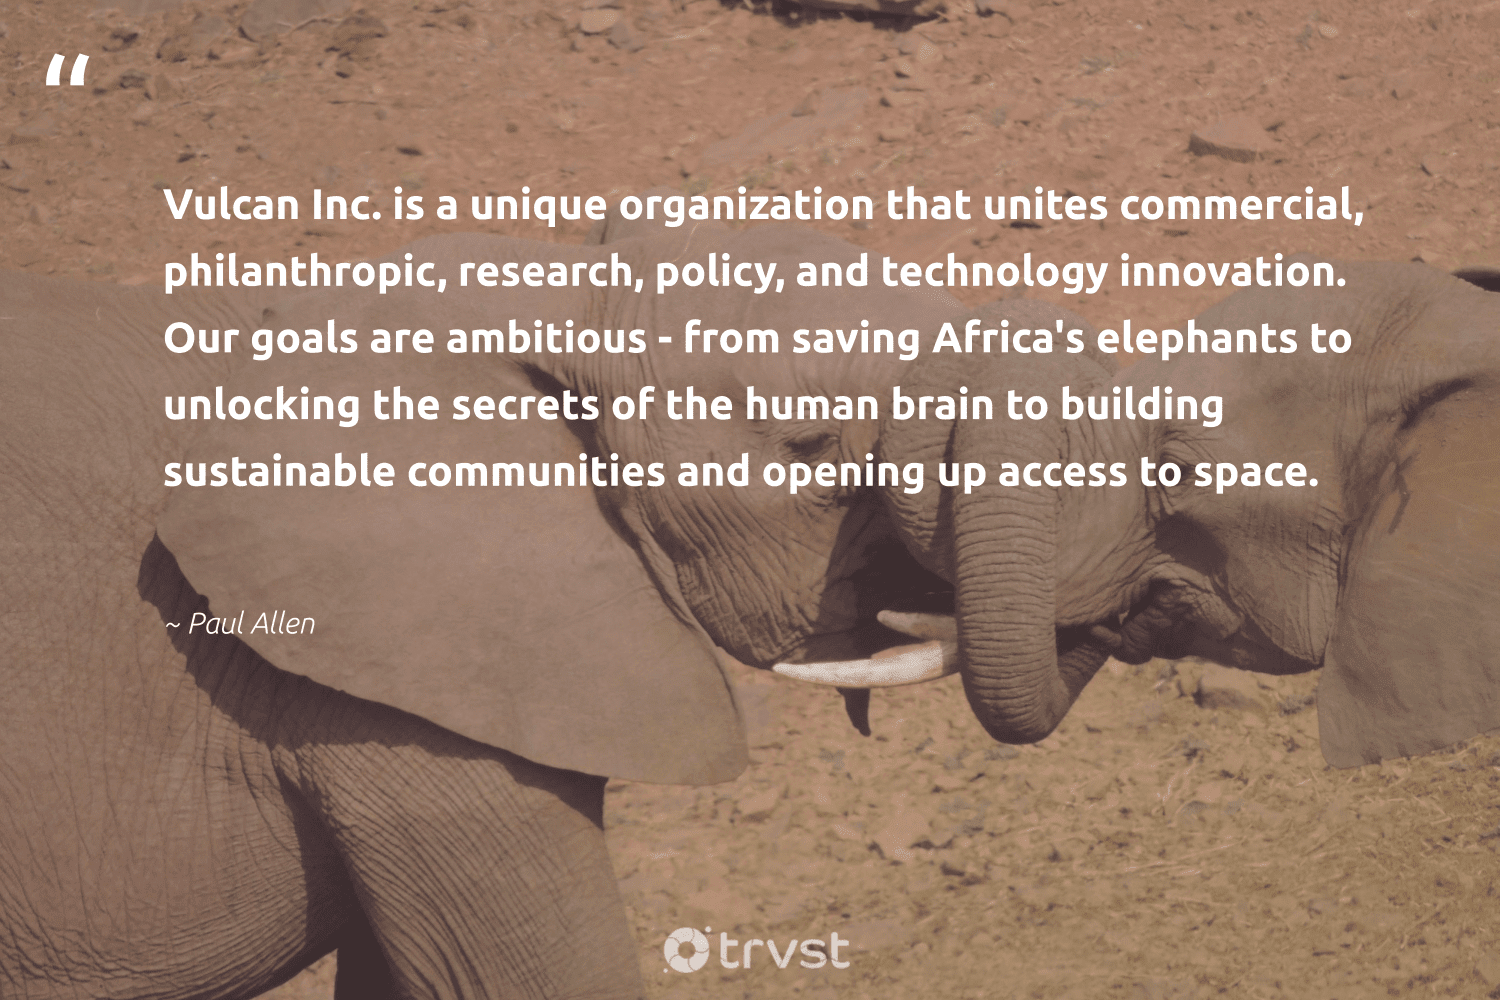 """""""Vulcan Inc. is a unique organization that unites commercial, philanthropic, research, policy, and technology innovation. Our goals are ambitious - from saving Africa's elephants to unlocking the secrets of the human brain to building sustainable communities and opening up access to space.""""  - Paul Allen #trvst #quotes #sustainable #research #communities #goals #philanthropic #elephants #biology #endangered #natural #socialchange"""